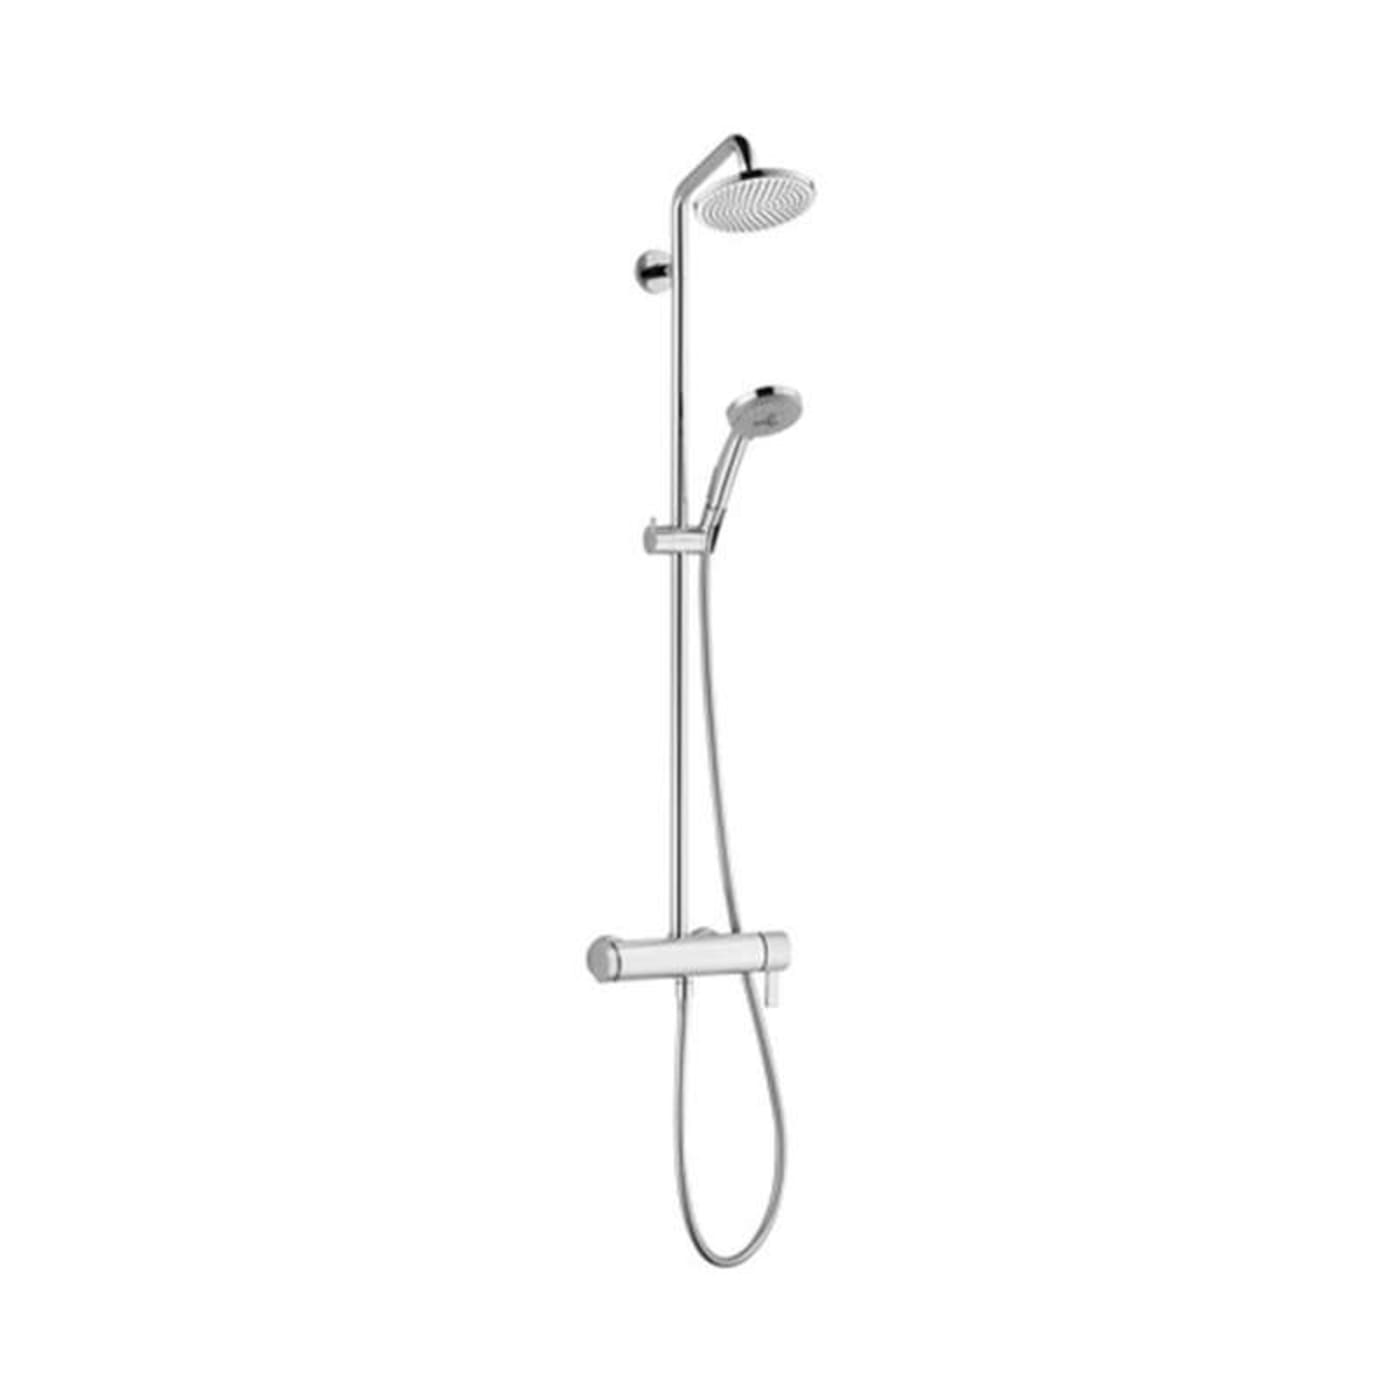 Hansgrohe Shower System 04530820 Brushed Nickel - Goedekers.com